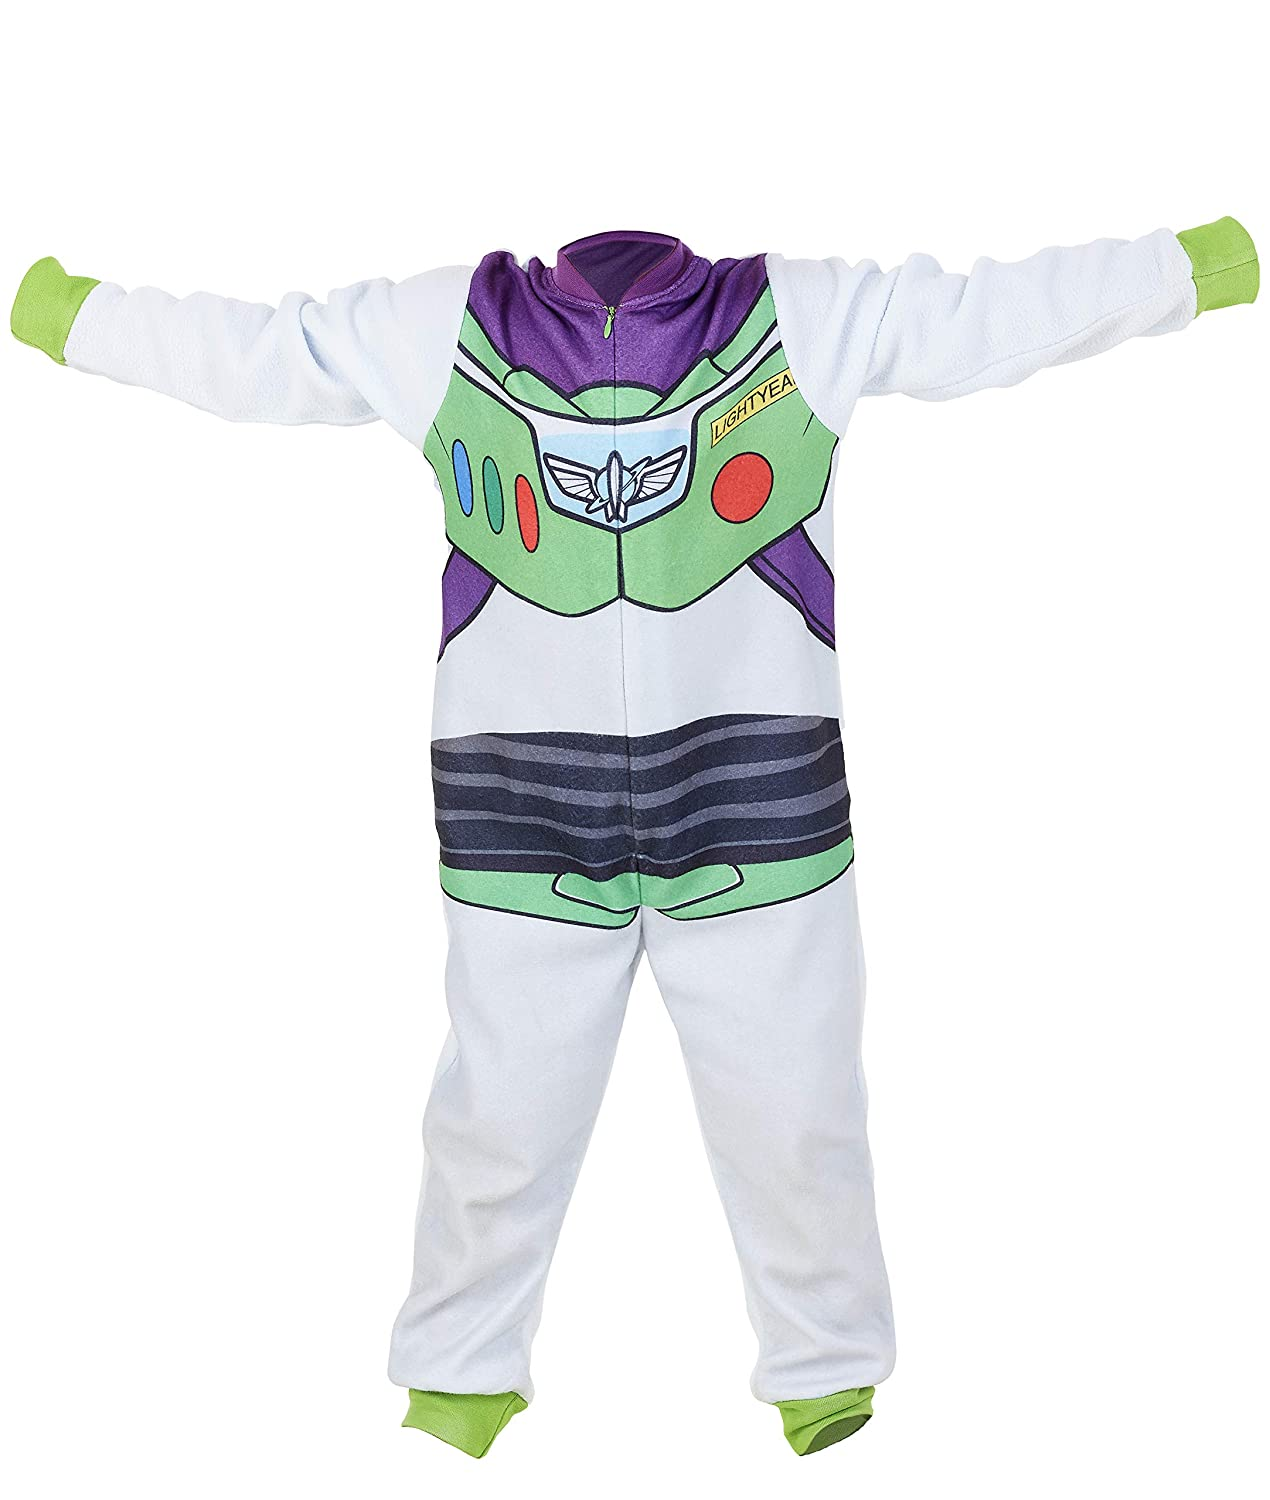 Gift for Boys 2-6 Years Disney Onesie for Kids All in One Children PJ Jumpsuit Children/'s Onesie Characters Woody and Buzz Onesie Pyjama for Boys